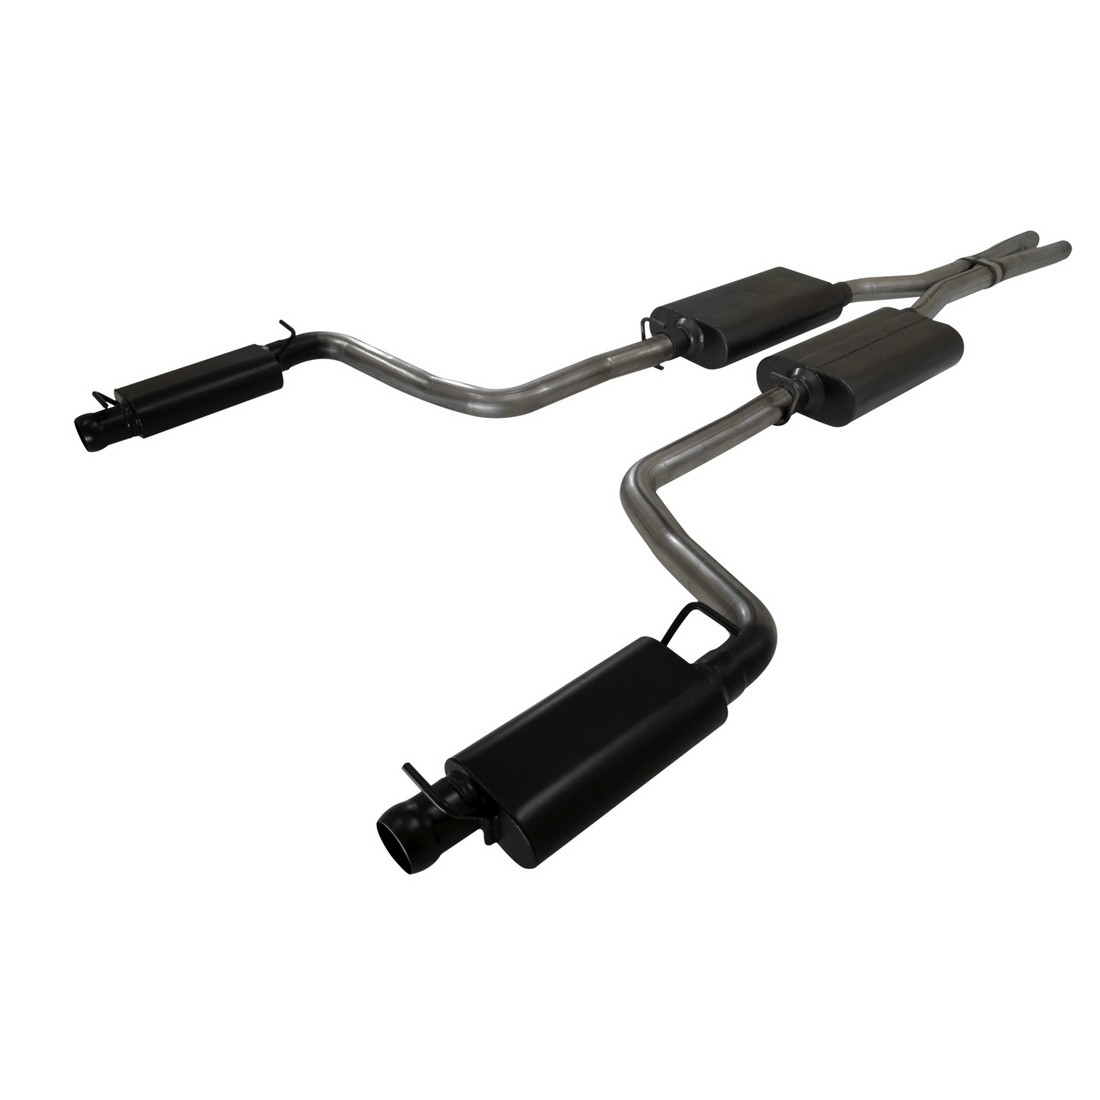 Dodge, Chrysler, & Mopar Exhaust Systems